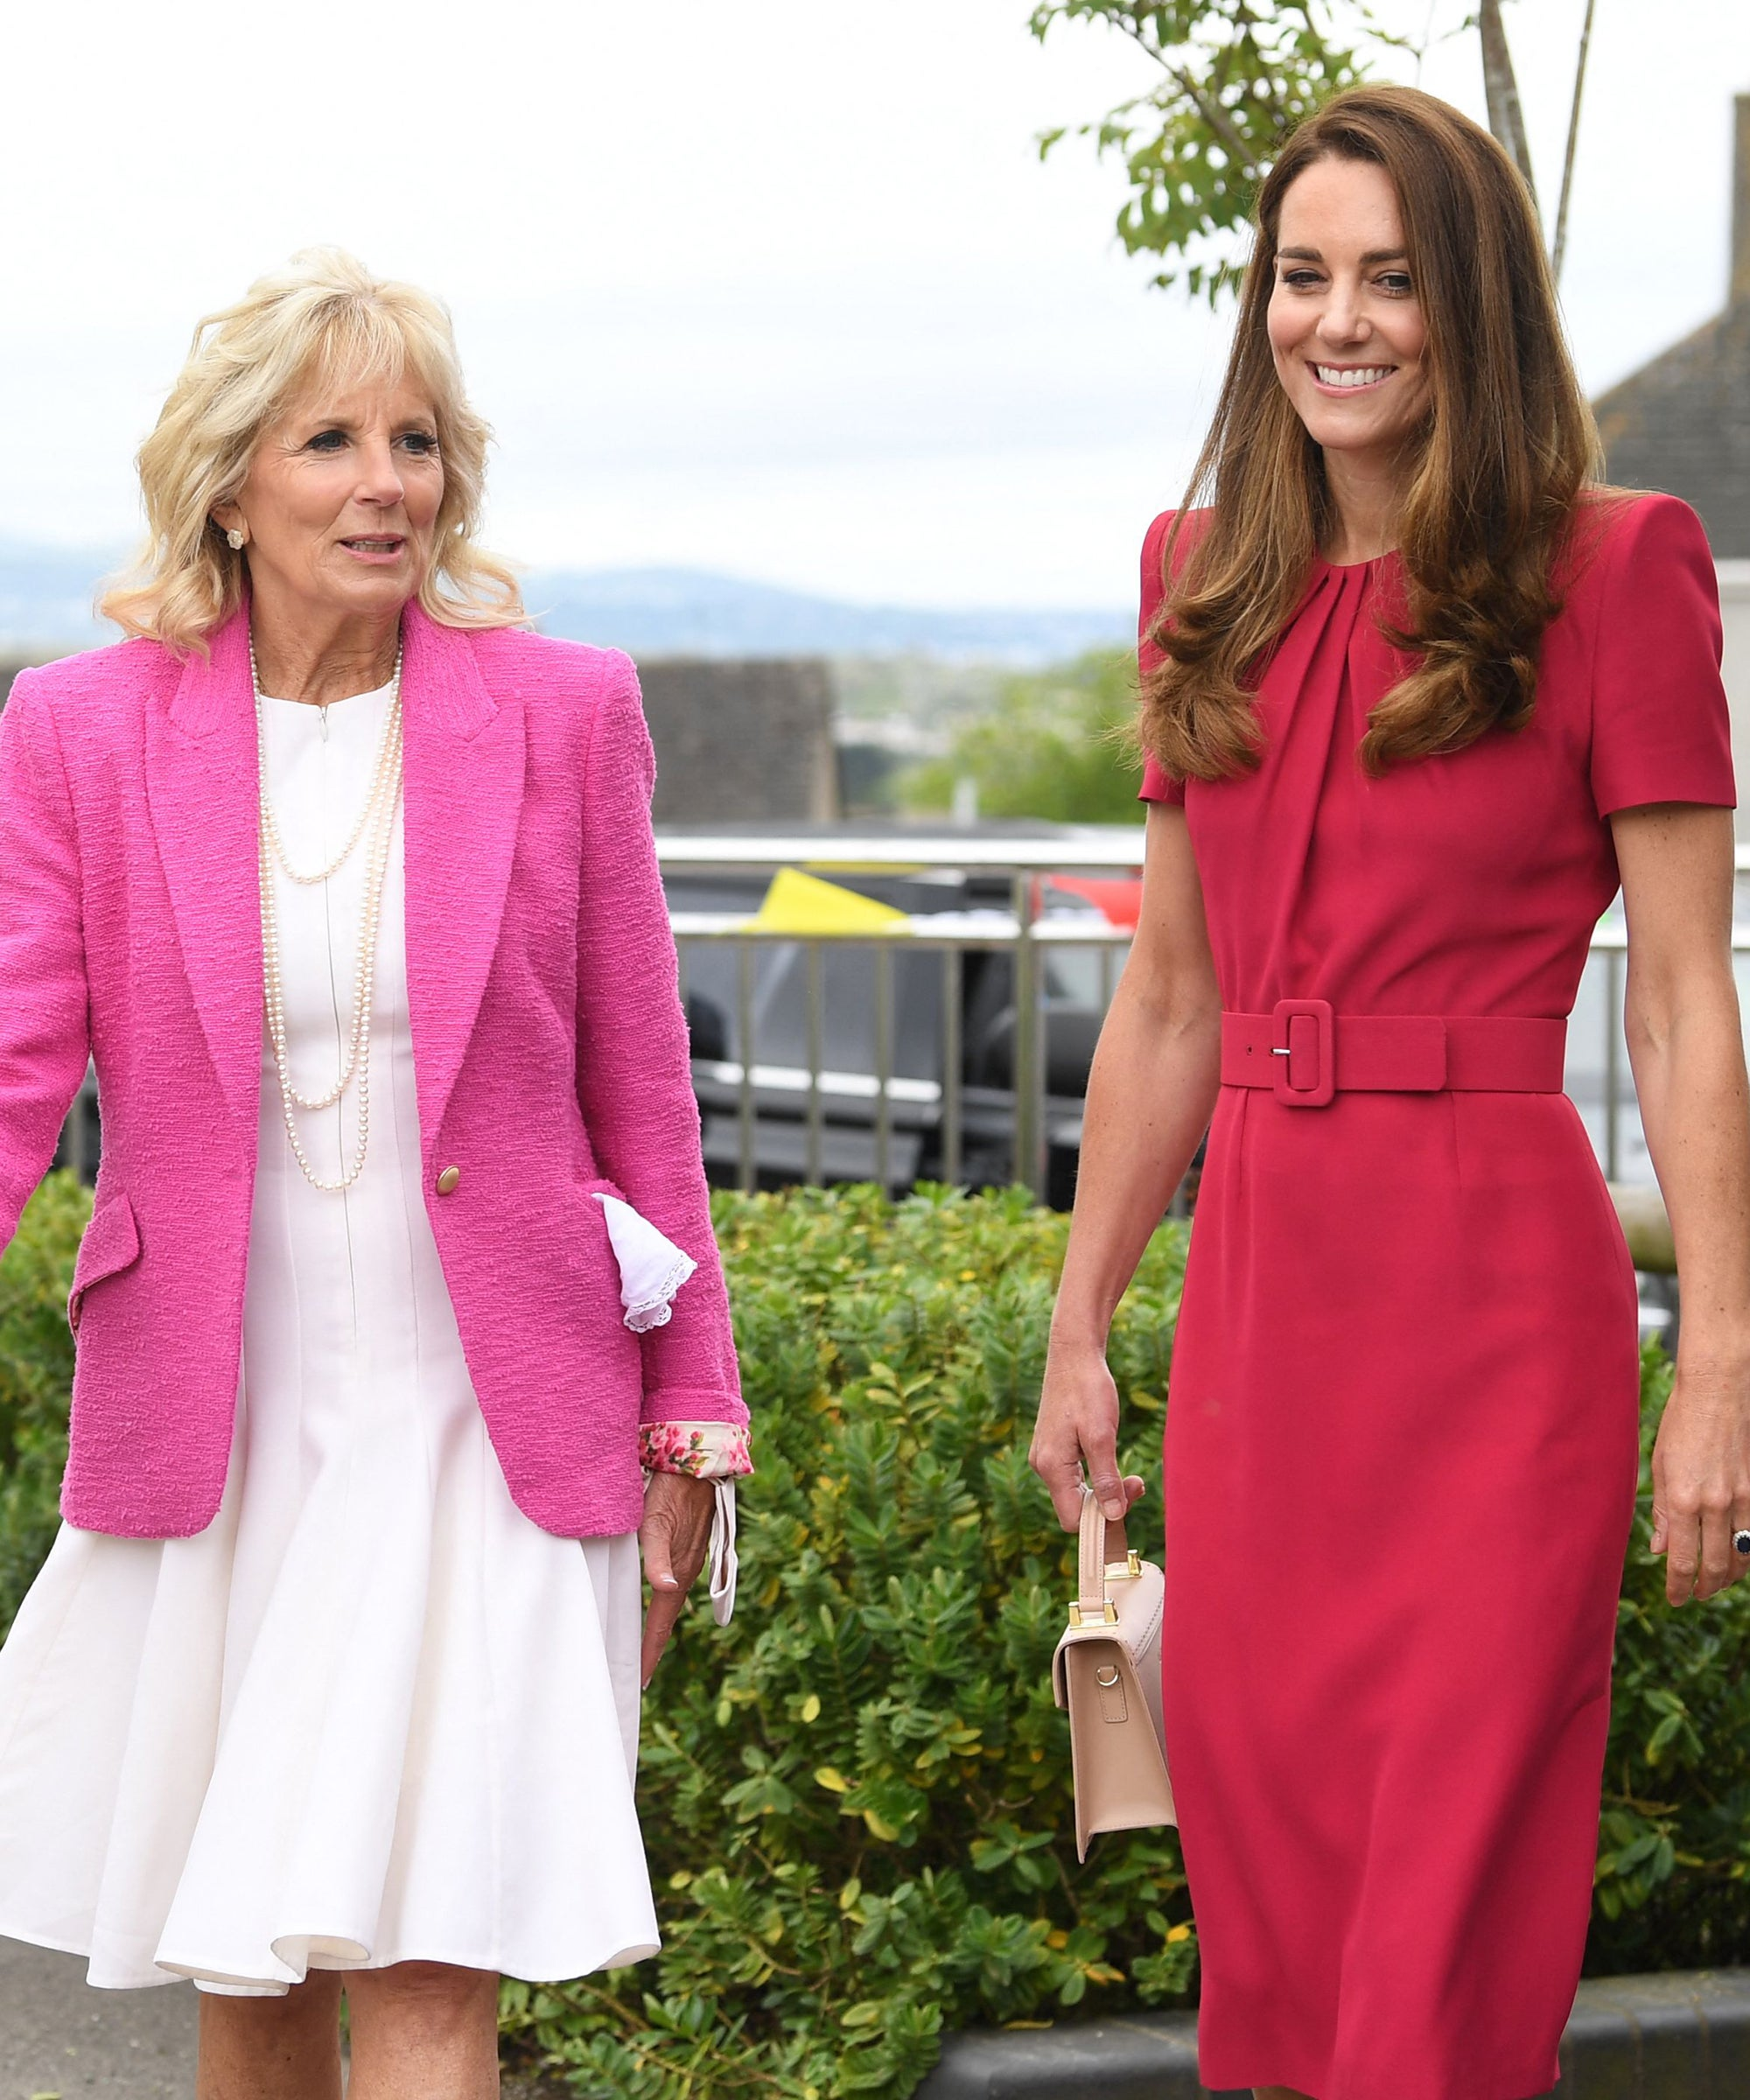 Jill Biden And Kate Middleton Matched In Pink For Their First Meeting